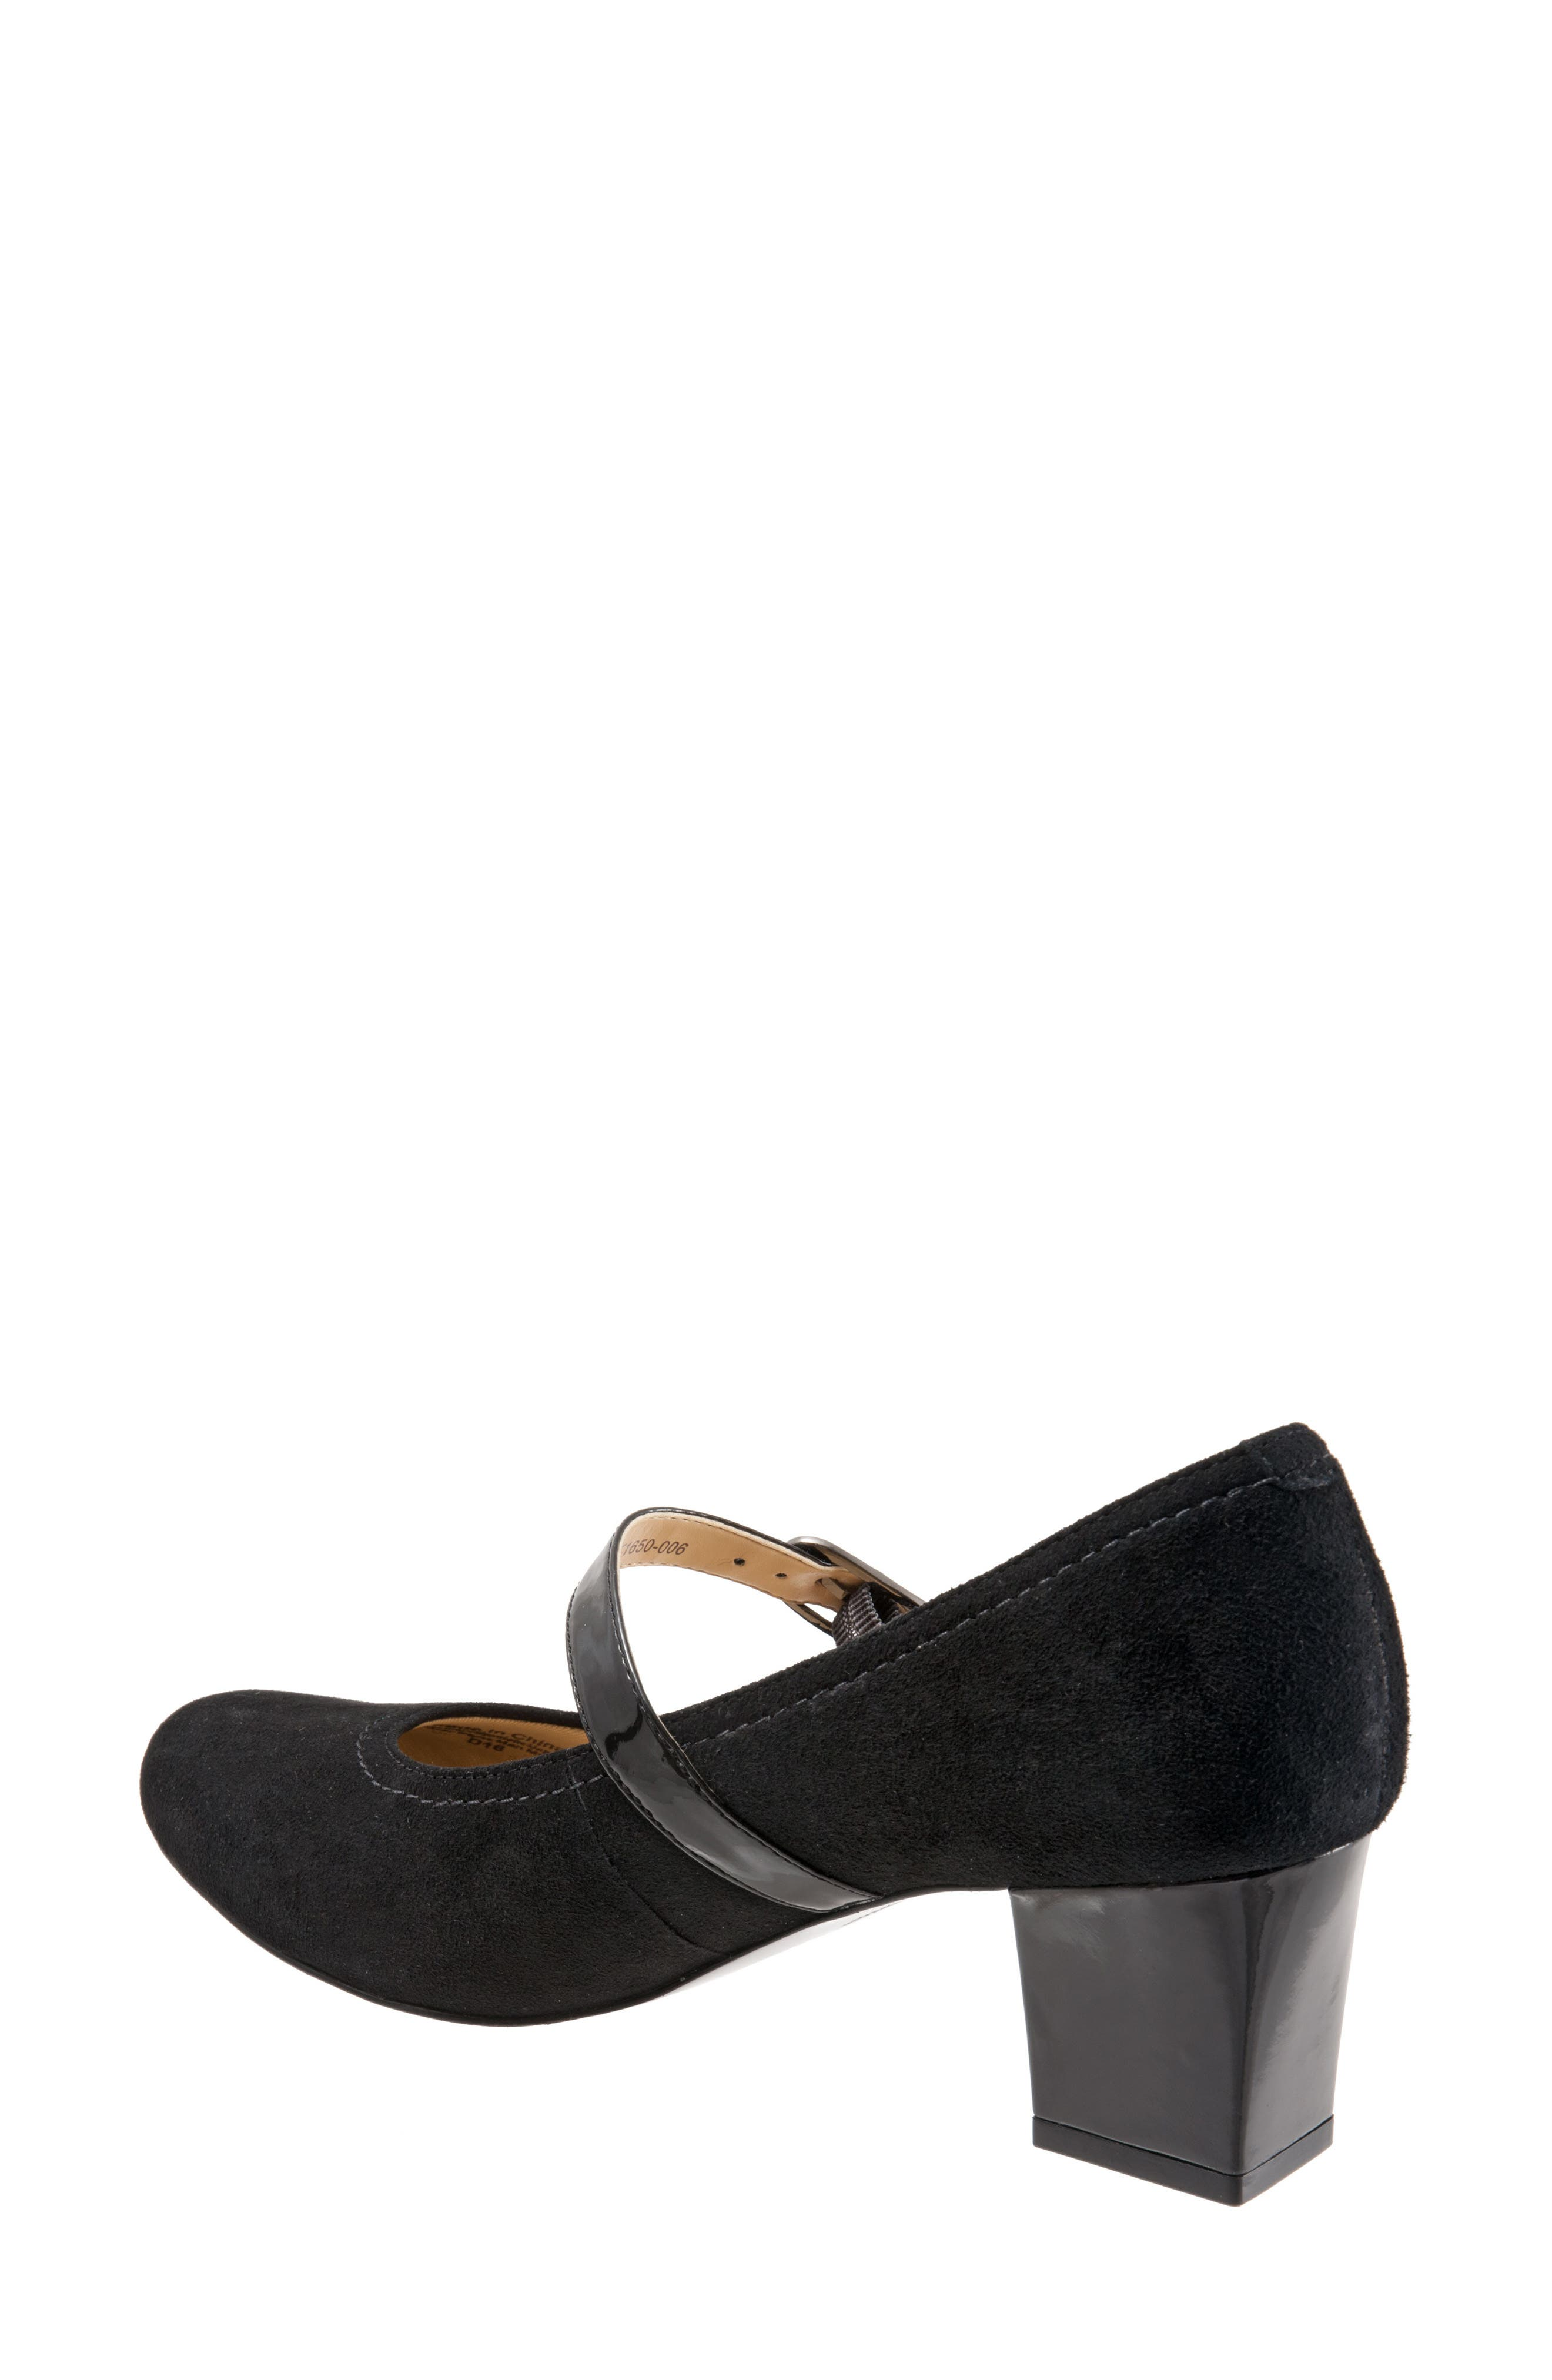 TROTTERS, 'Candice' Mary Jane Pump, Alternate thumbnail 6, color, BLACK SUEDE